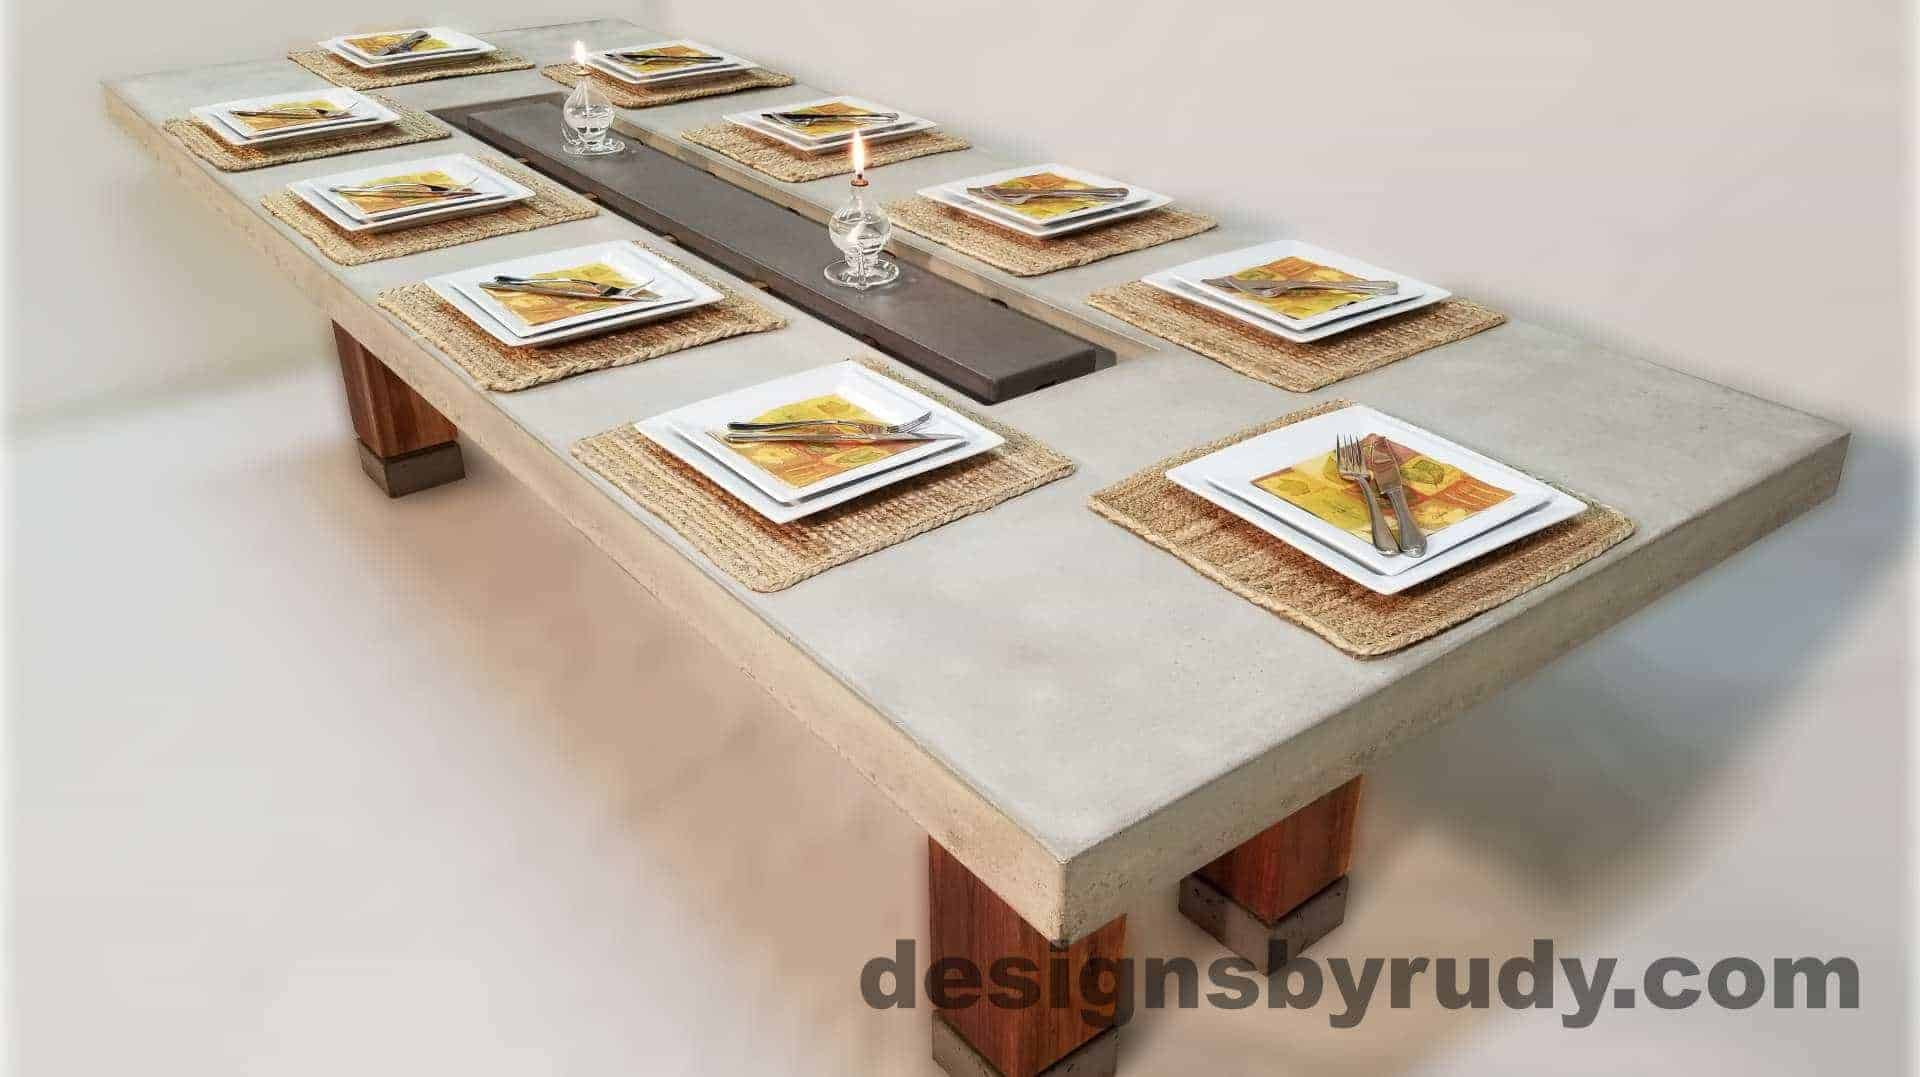 Concrete top dining table on teak legs with center serving tray - angle view, Designs by Rudy